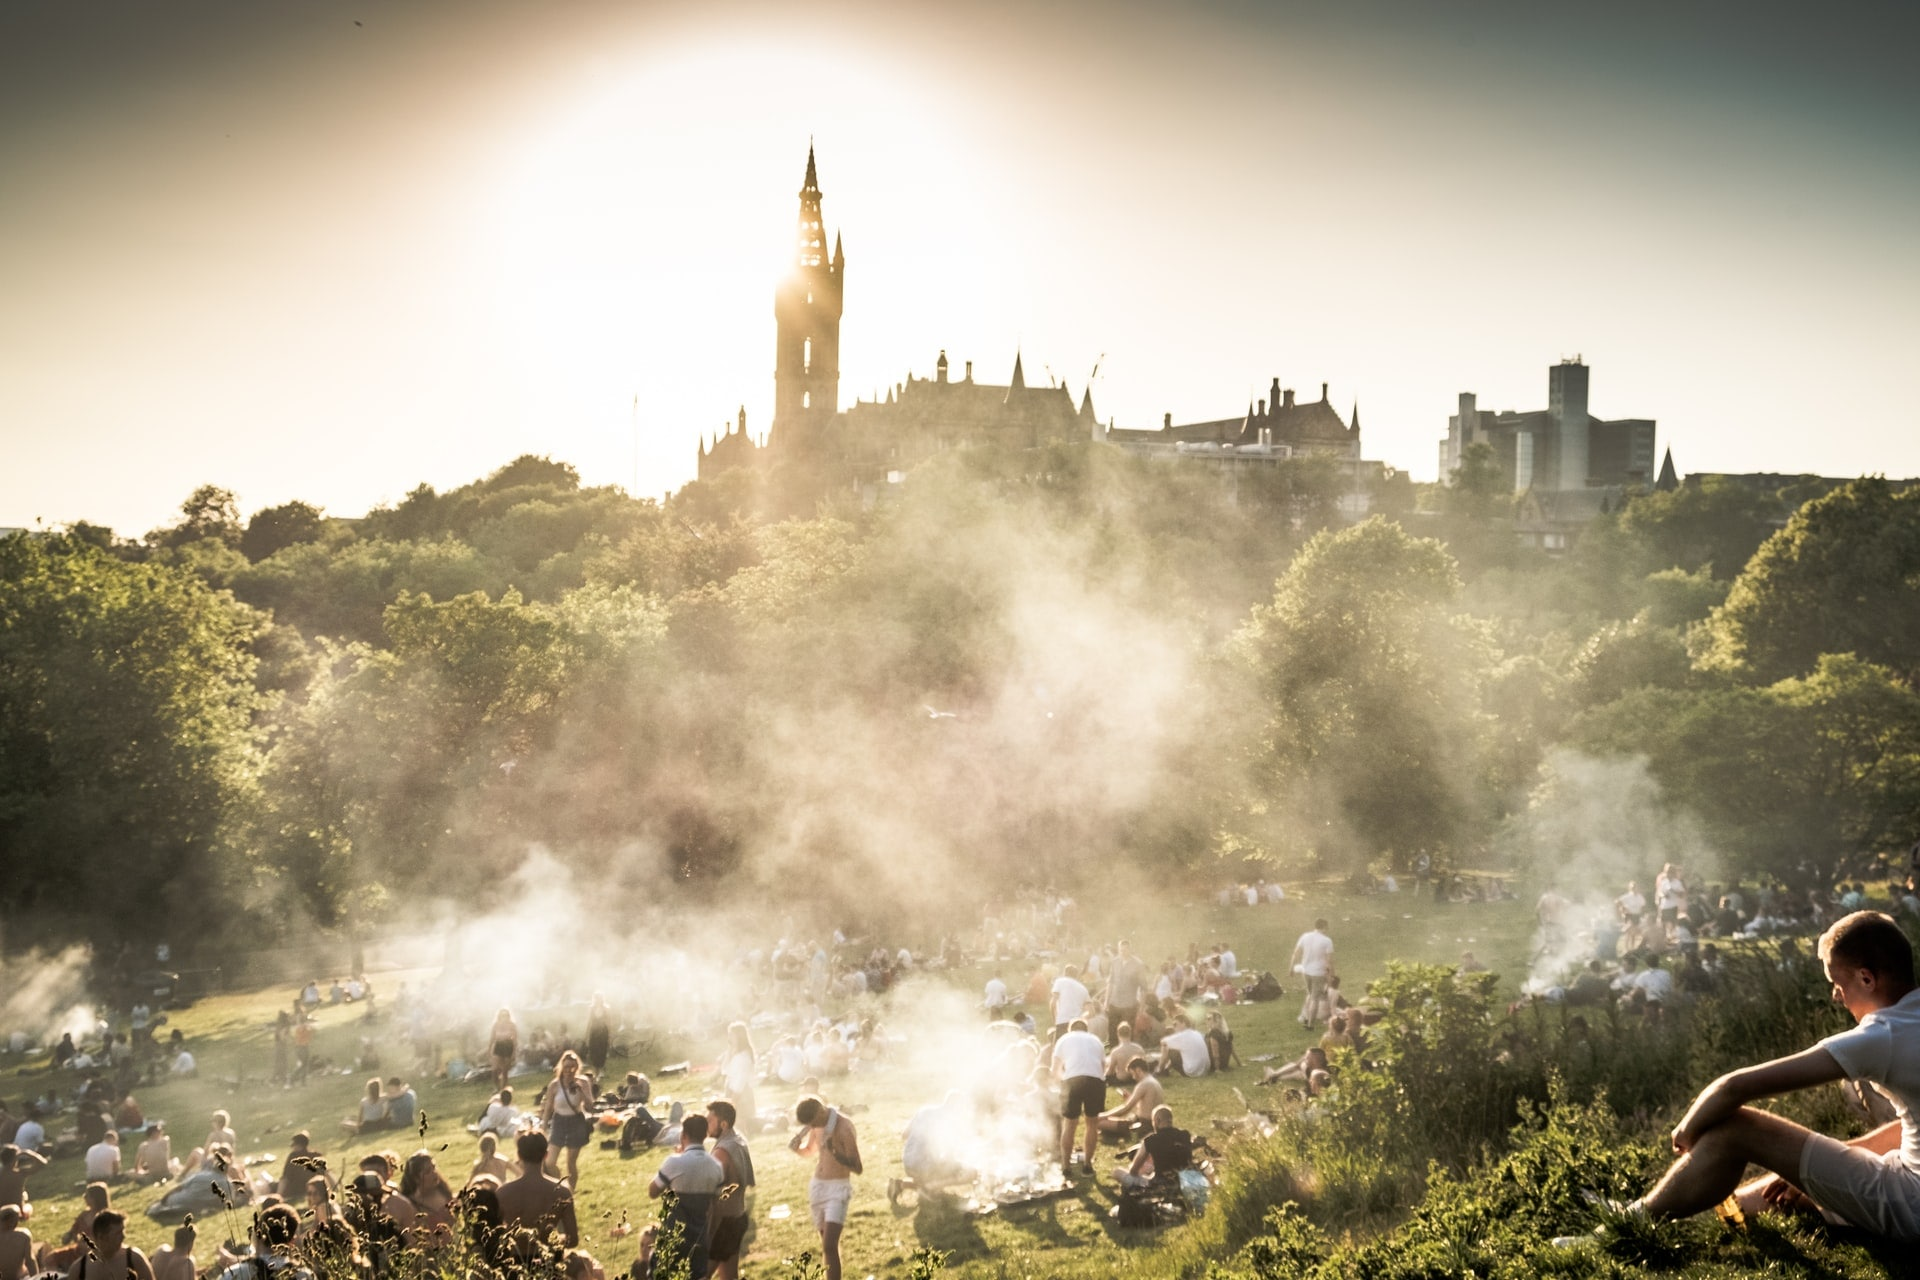 students-and-young-people-relaxing-on-grass-in-summer-on-glasgow-university-grounds-with-barbeque-smoke-everywhere-2-days-in-glasgow